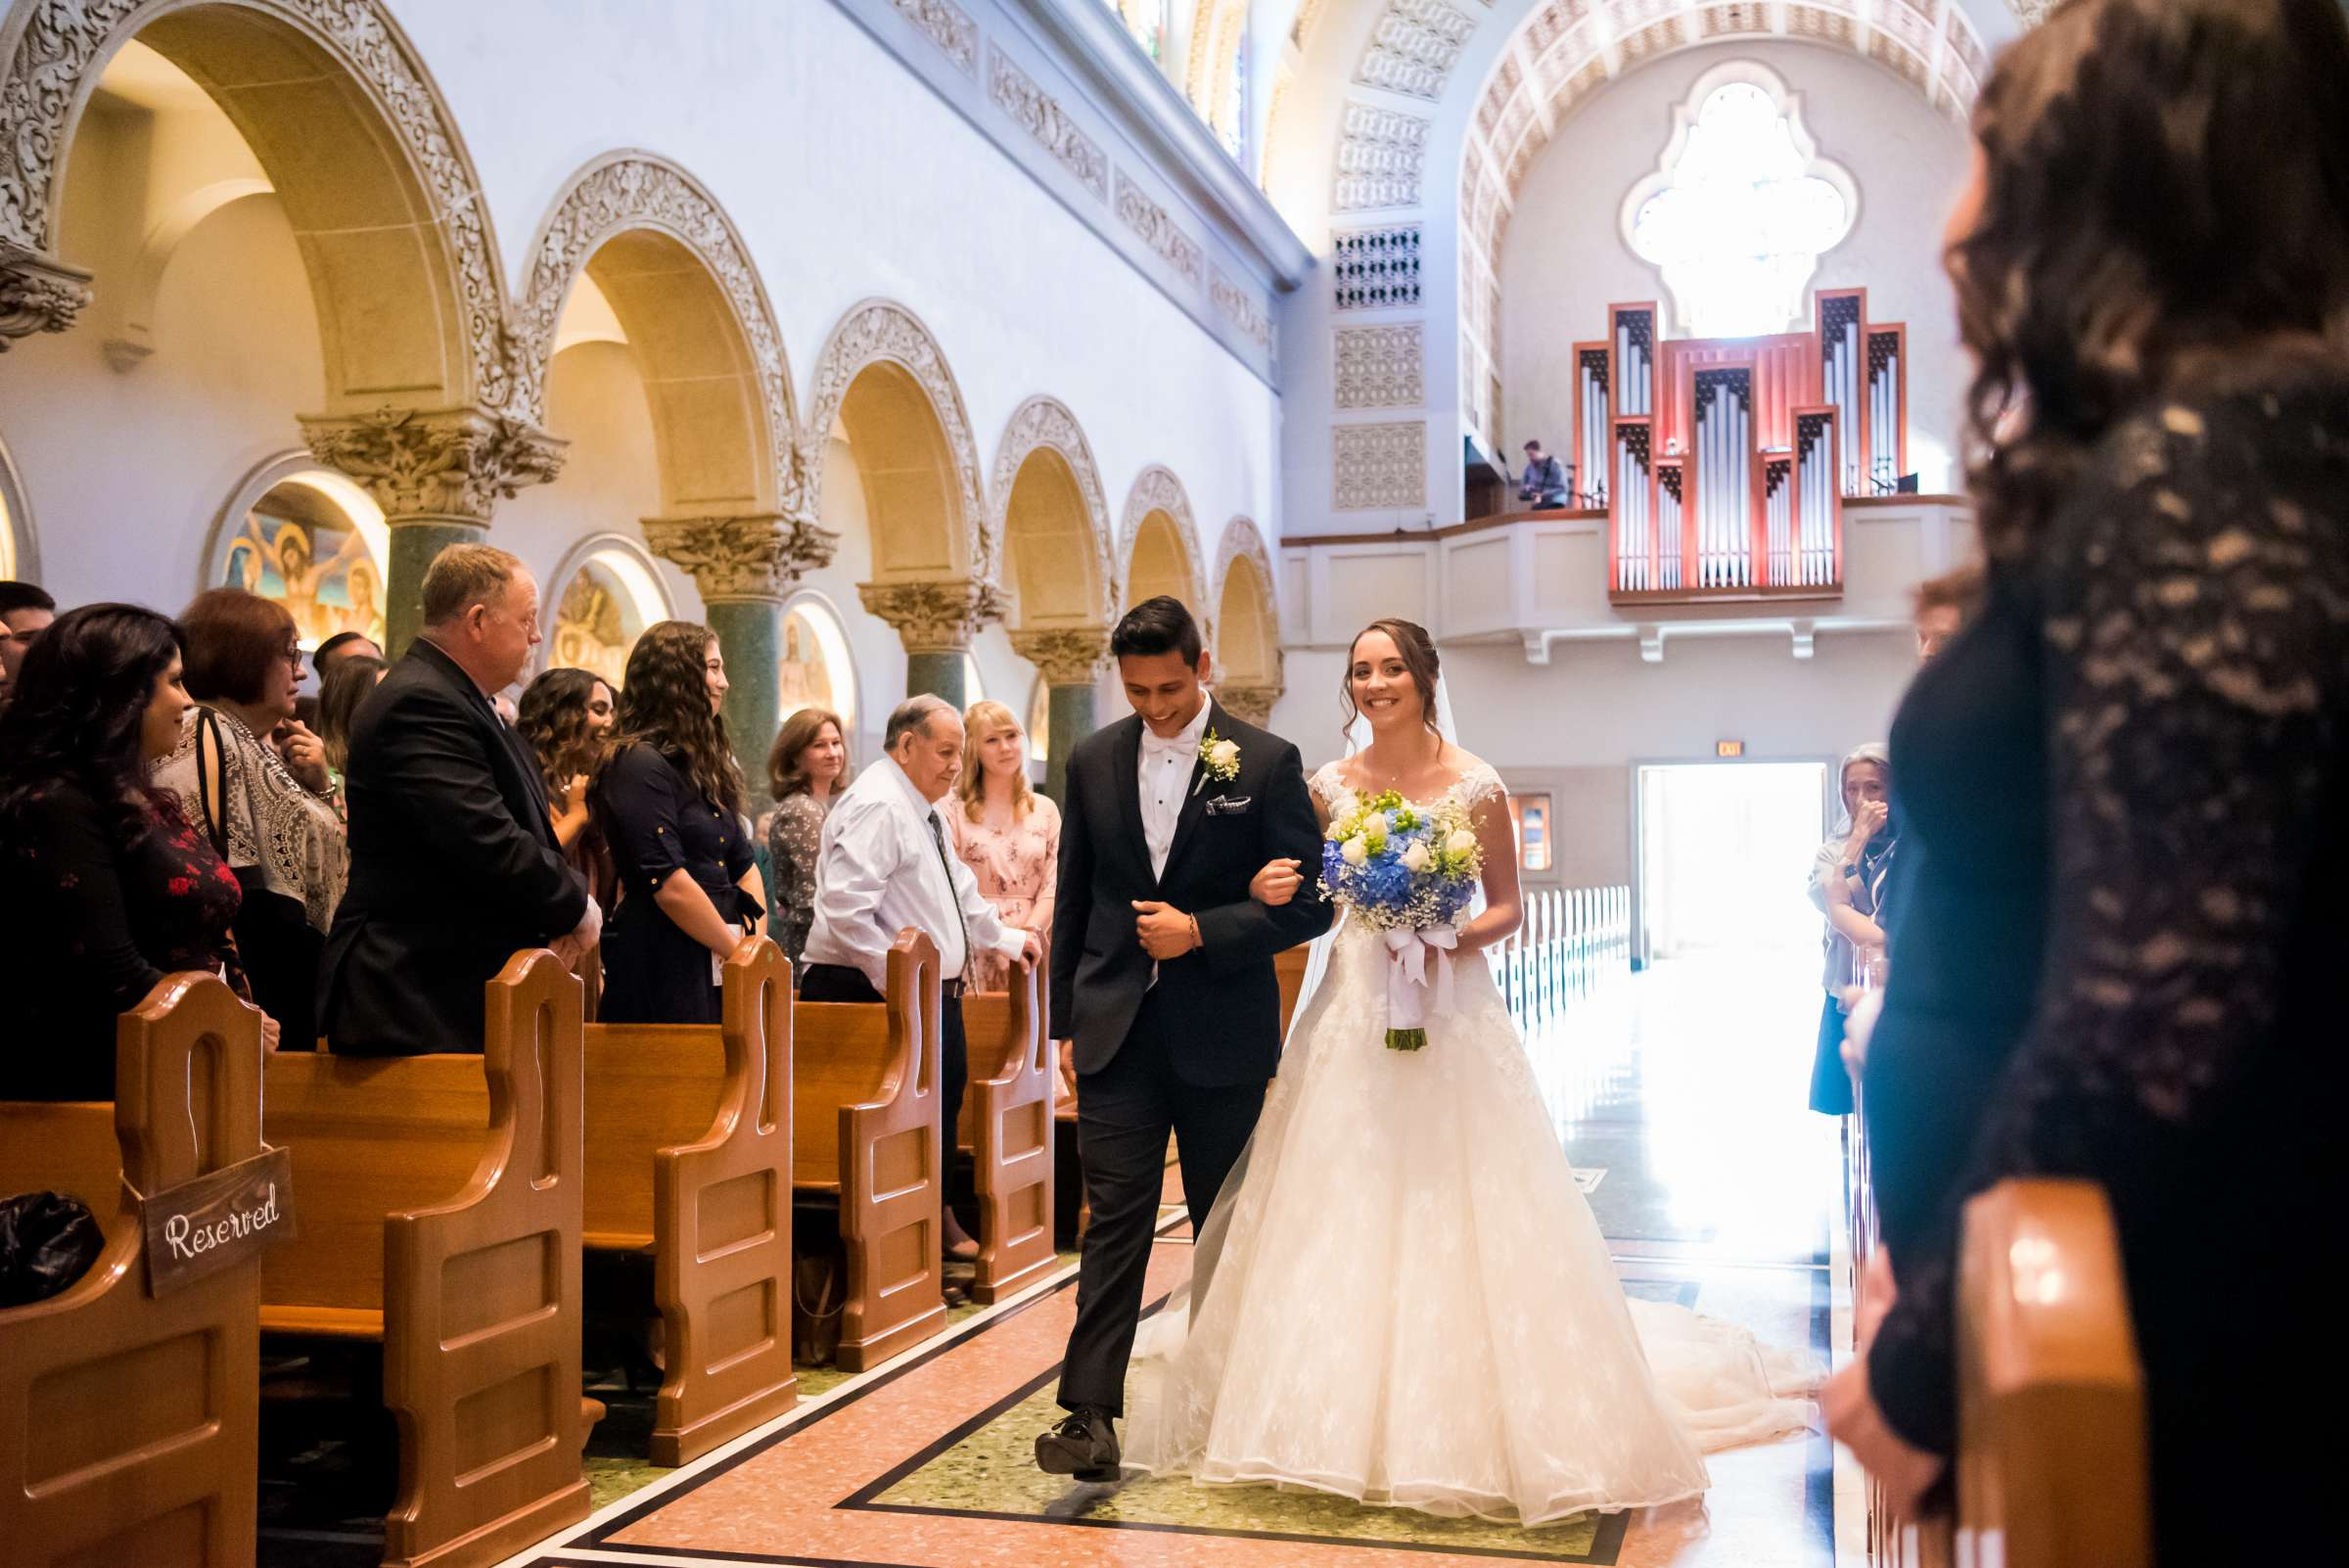 The Immaculata Wedding, Arianna and Jonah Wedding Photo #104 by True Photography